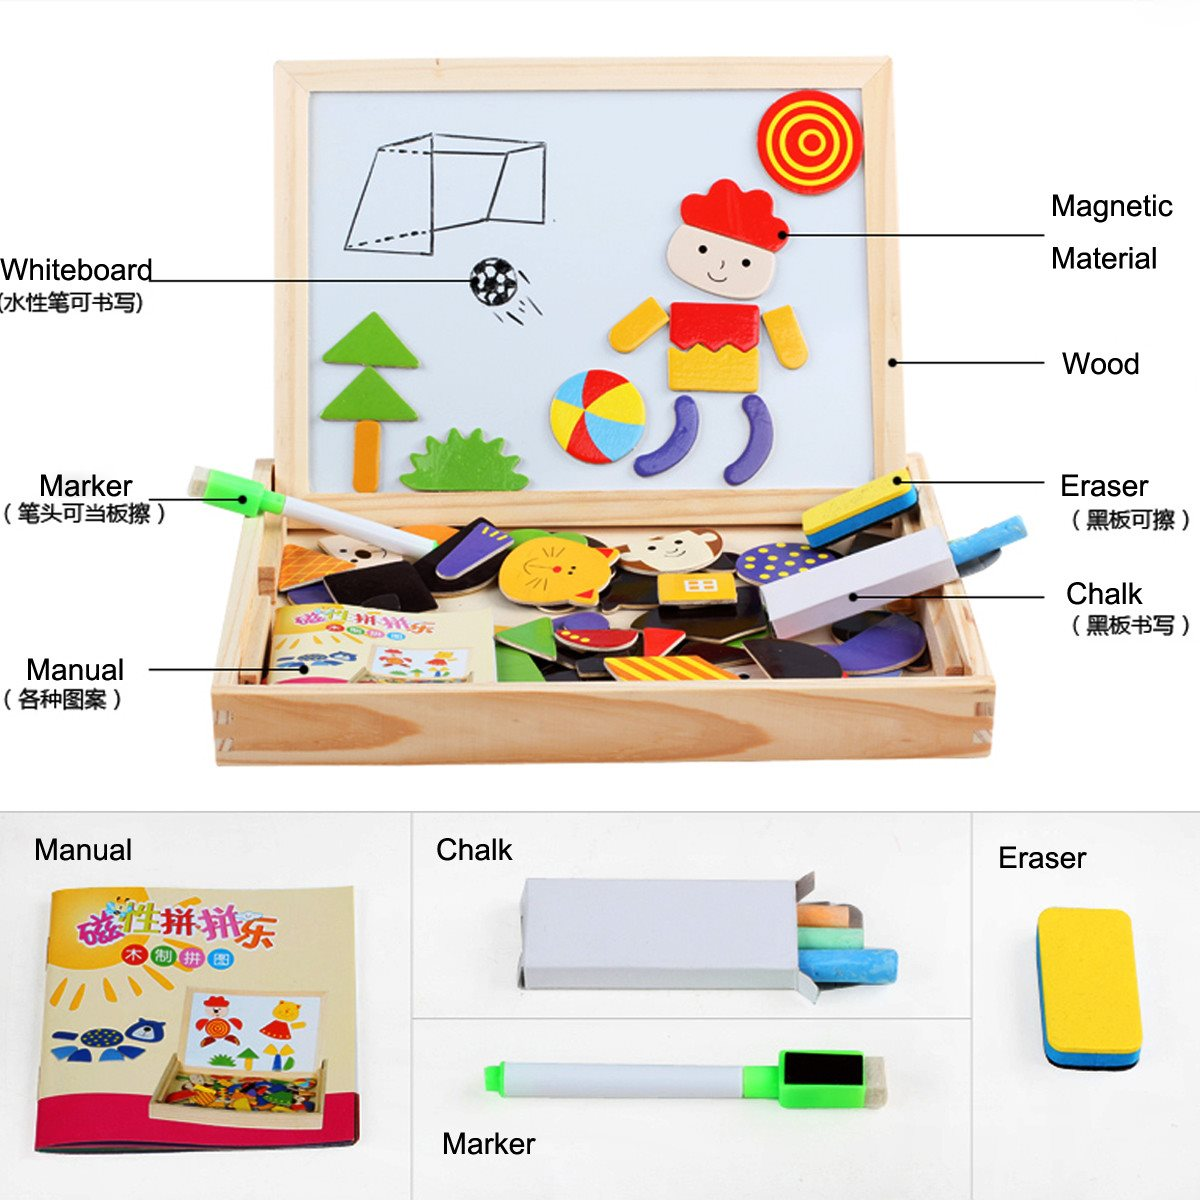 New-Arrival-Drawing-Writing-Board-Magnetic-Board-Puzzle-Double-Easel-Kid-Wooden-Toy-Gift-Children-Intelligence-Development-Toy-5